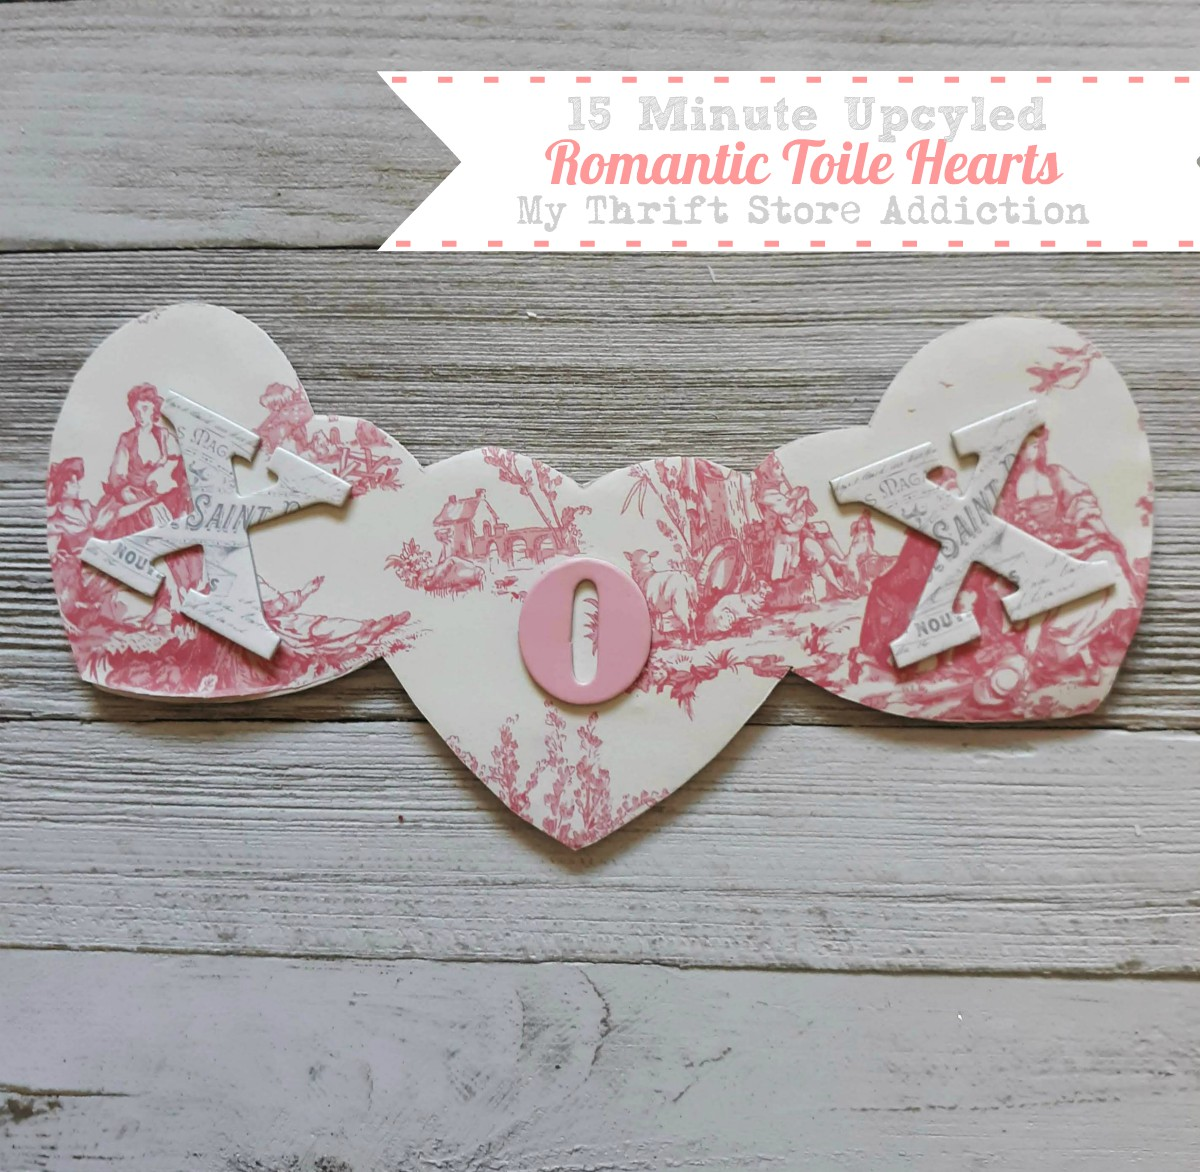 upcycled romantic toile hearts